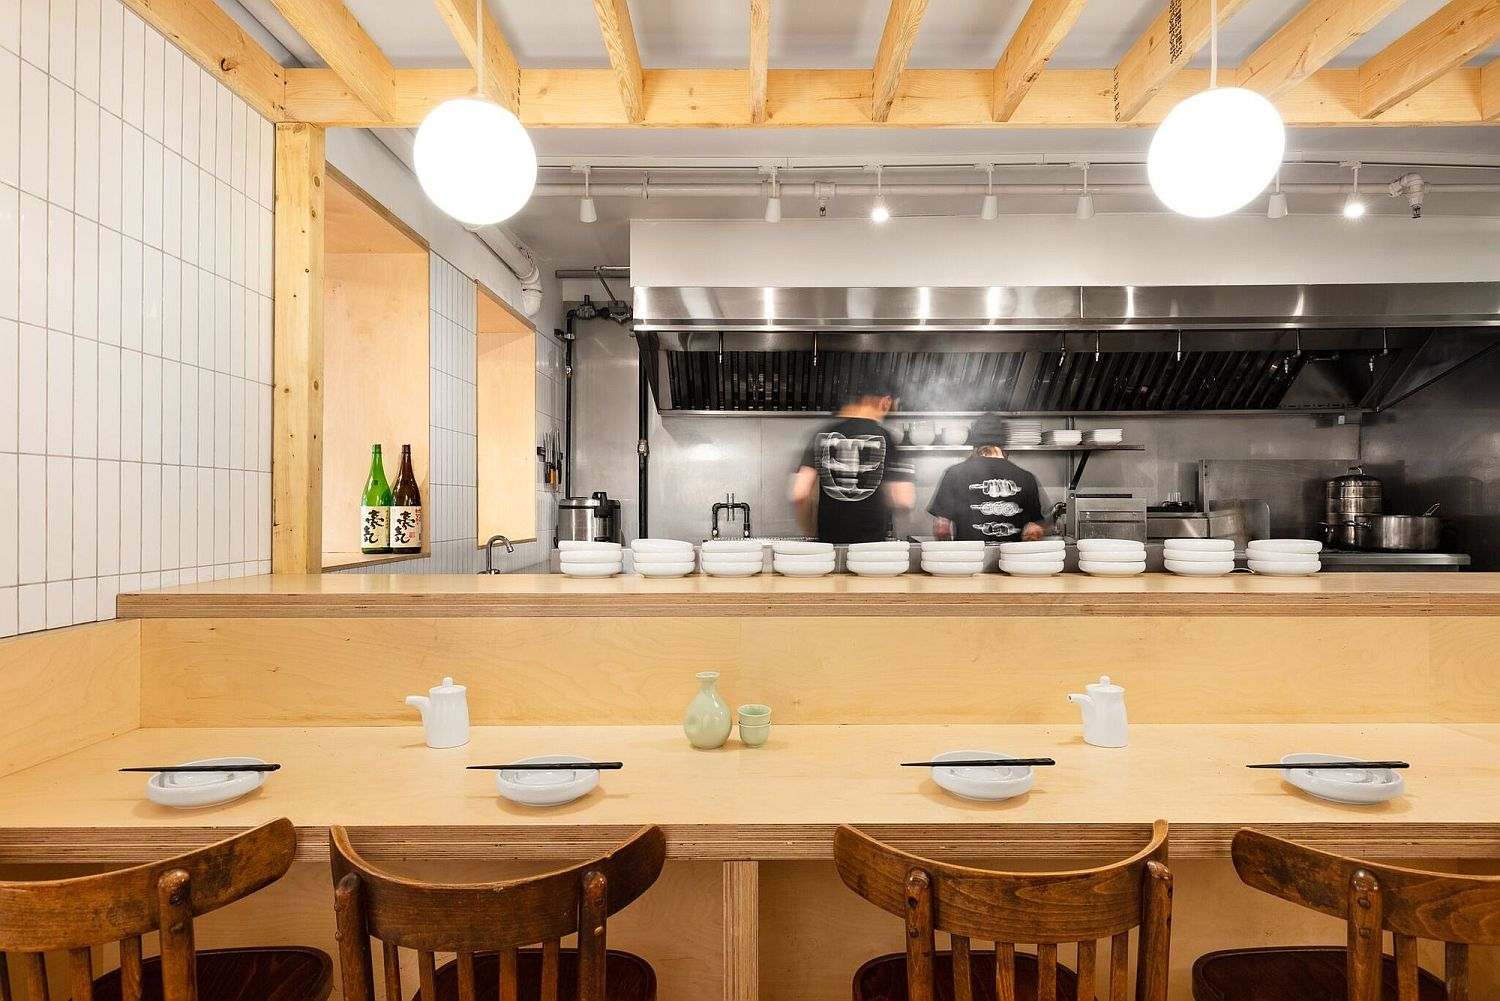 Stainless-steel-backdrop-of-the-diner-with-wood-all-around